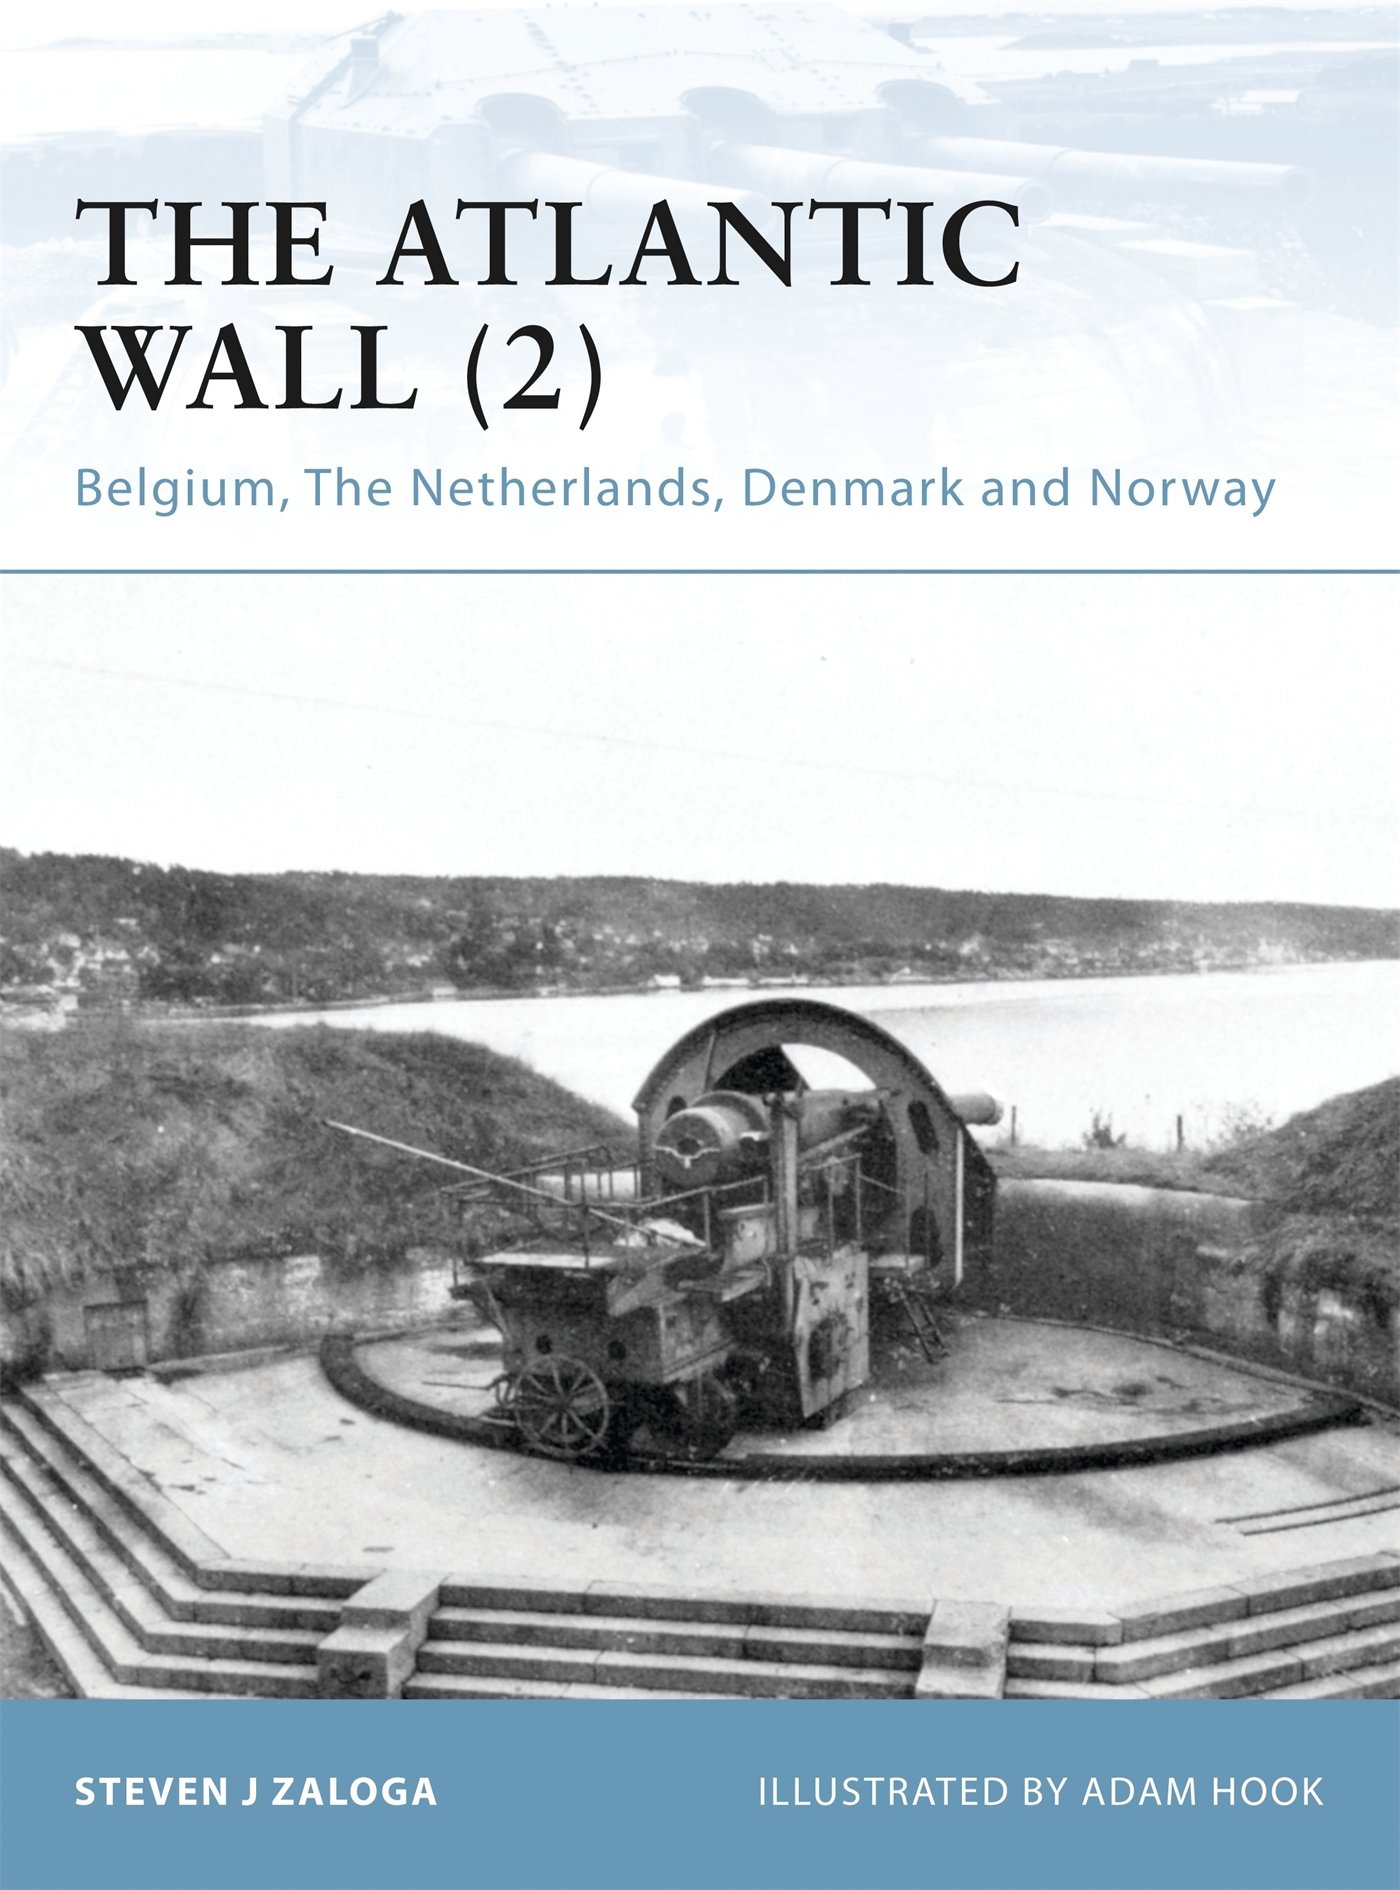 Download The Atlantic Wall (2): Belgium, The Netherlands, Denmark and Norway (Fortress) pdf